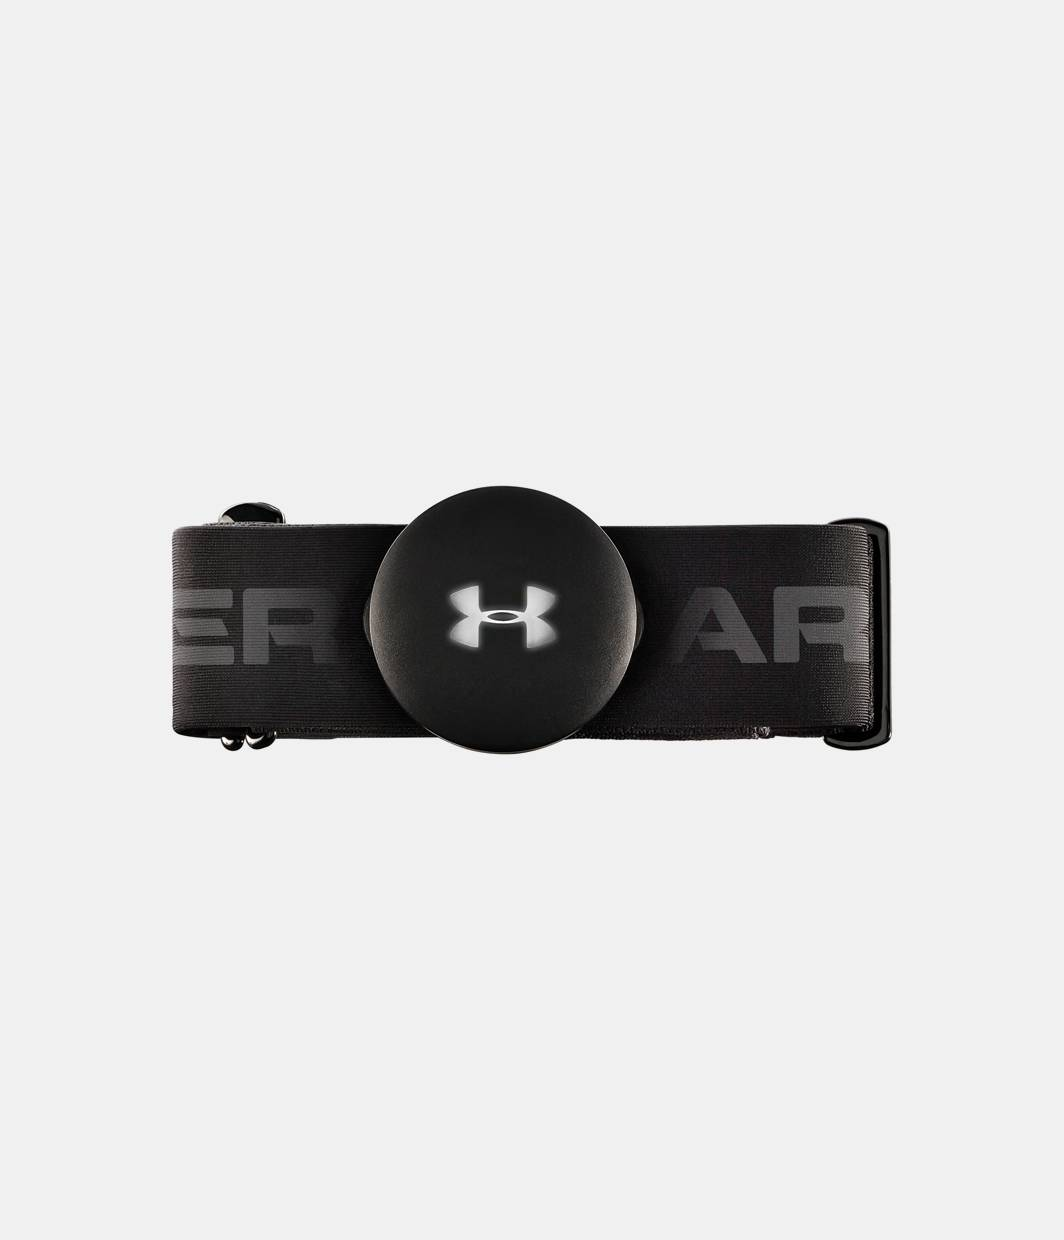 Ua heart rate under armour us ua heart rate nvjuhfo Image collections